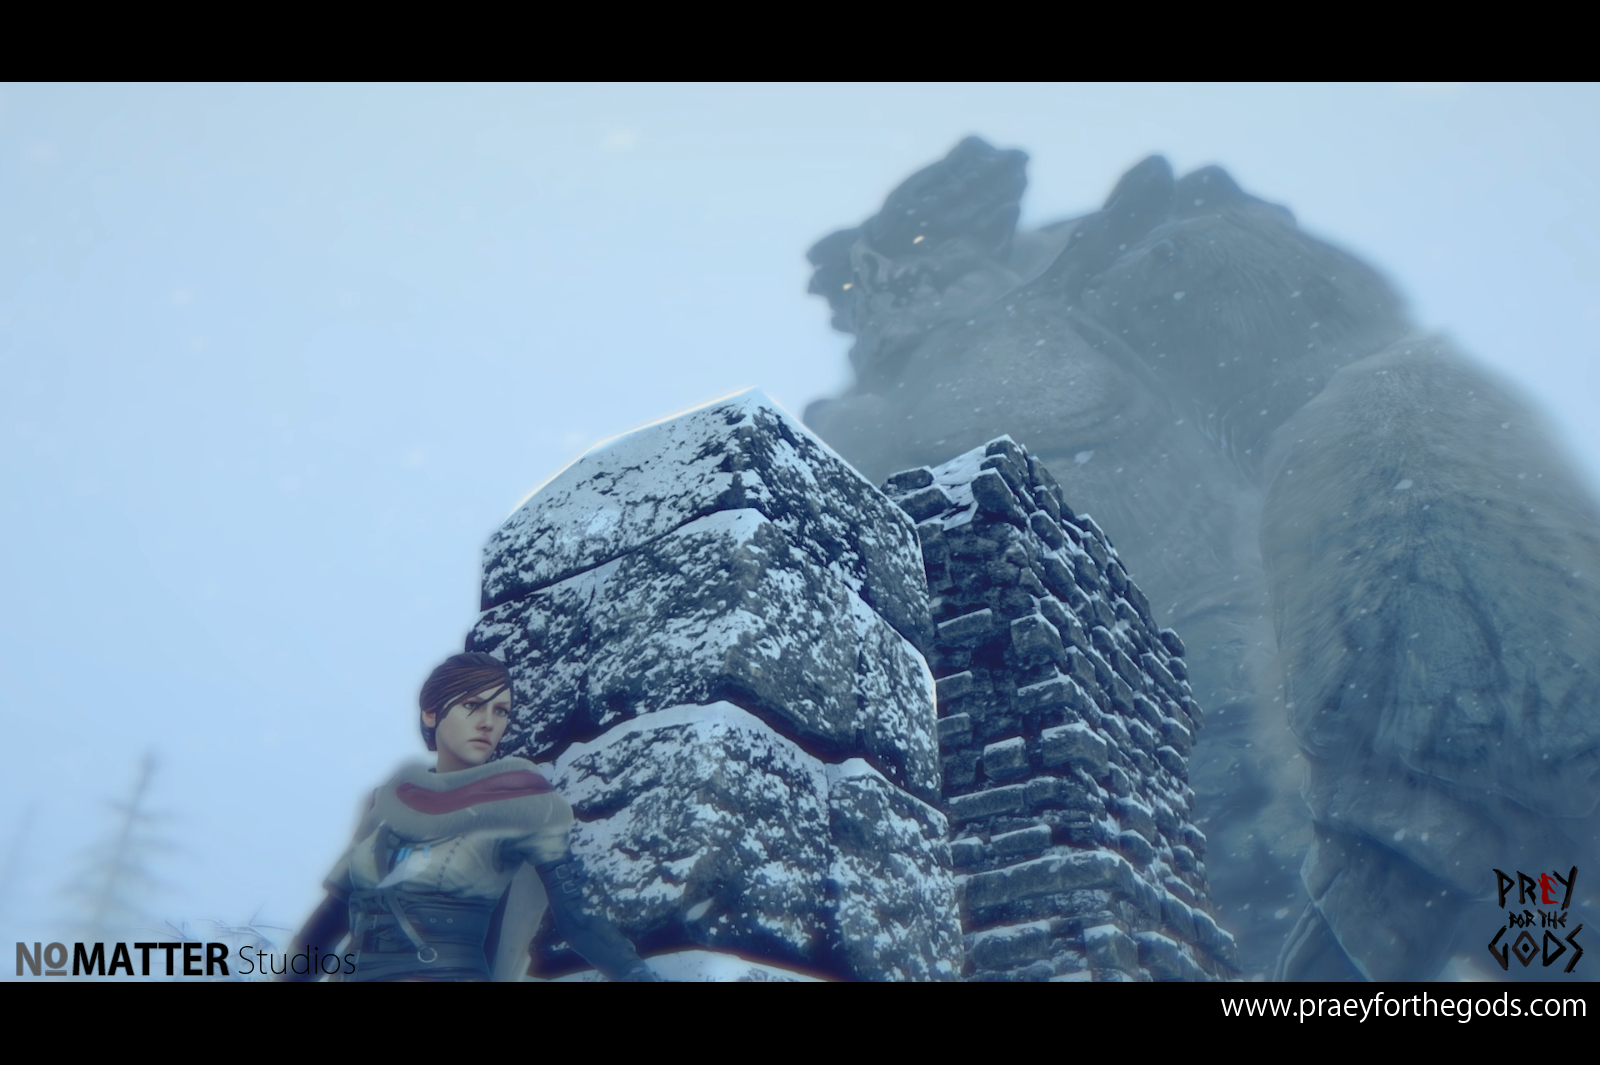 The game's protagonist hides behind a stone pillar as a massive creature looms in the background.